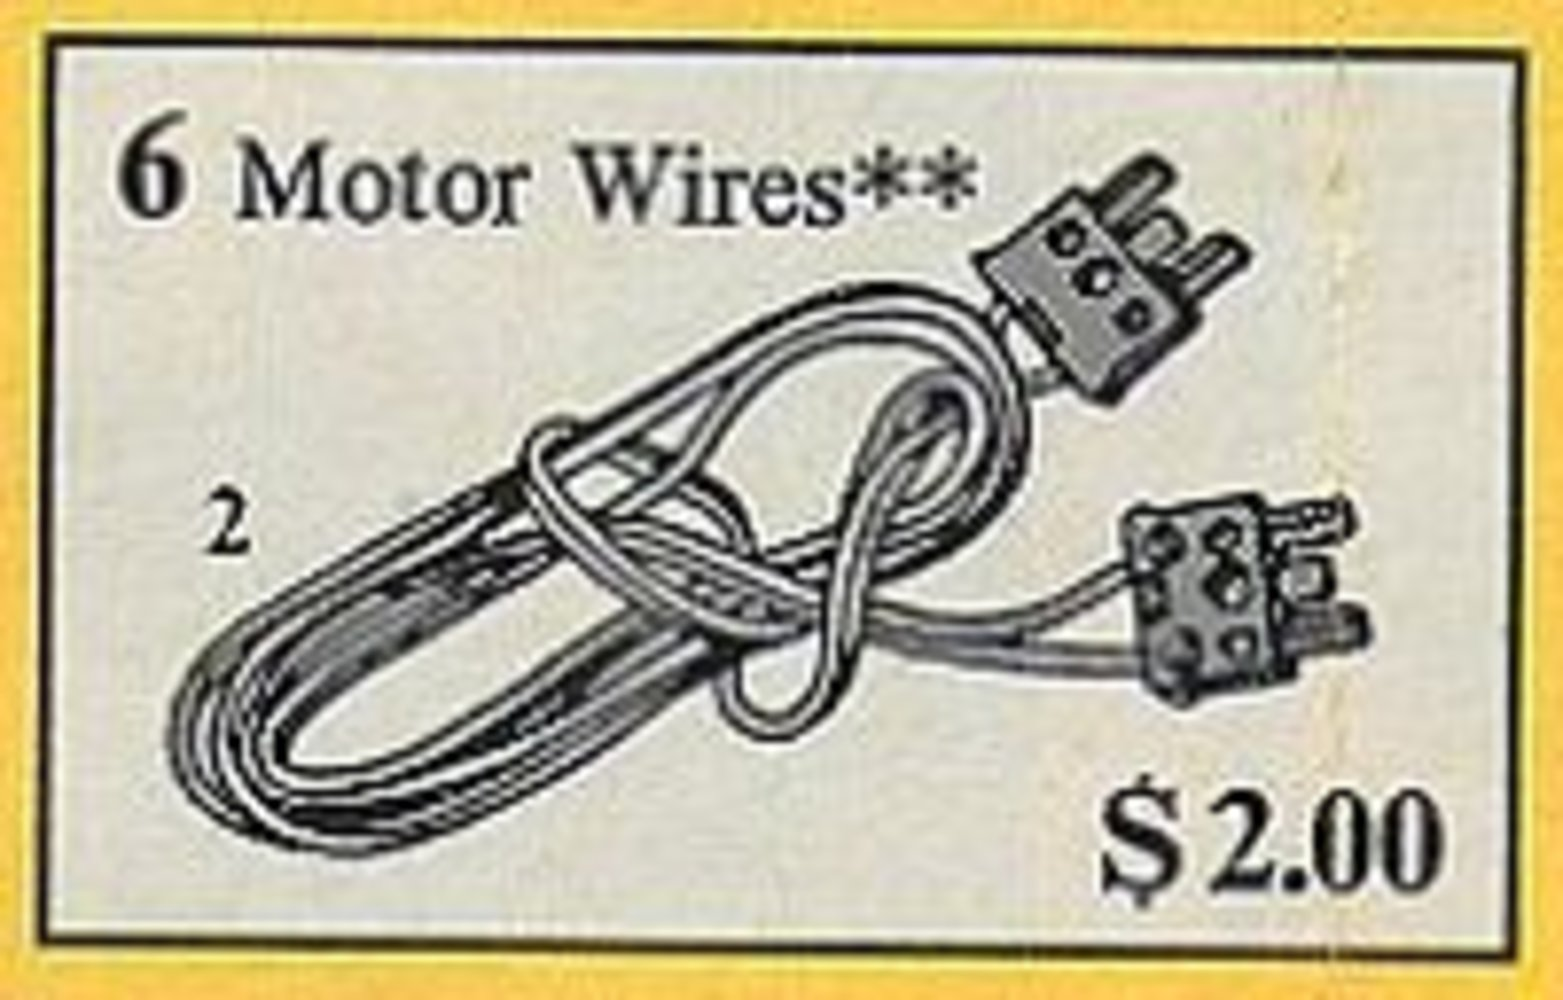 Motor Wires